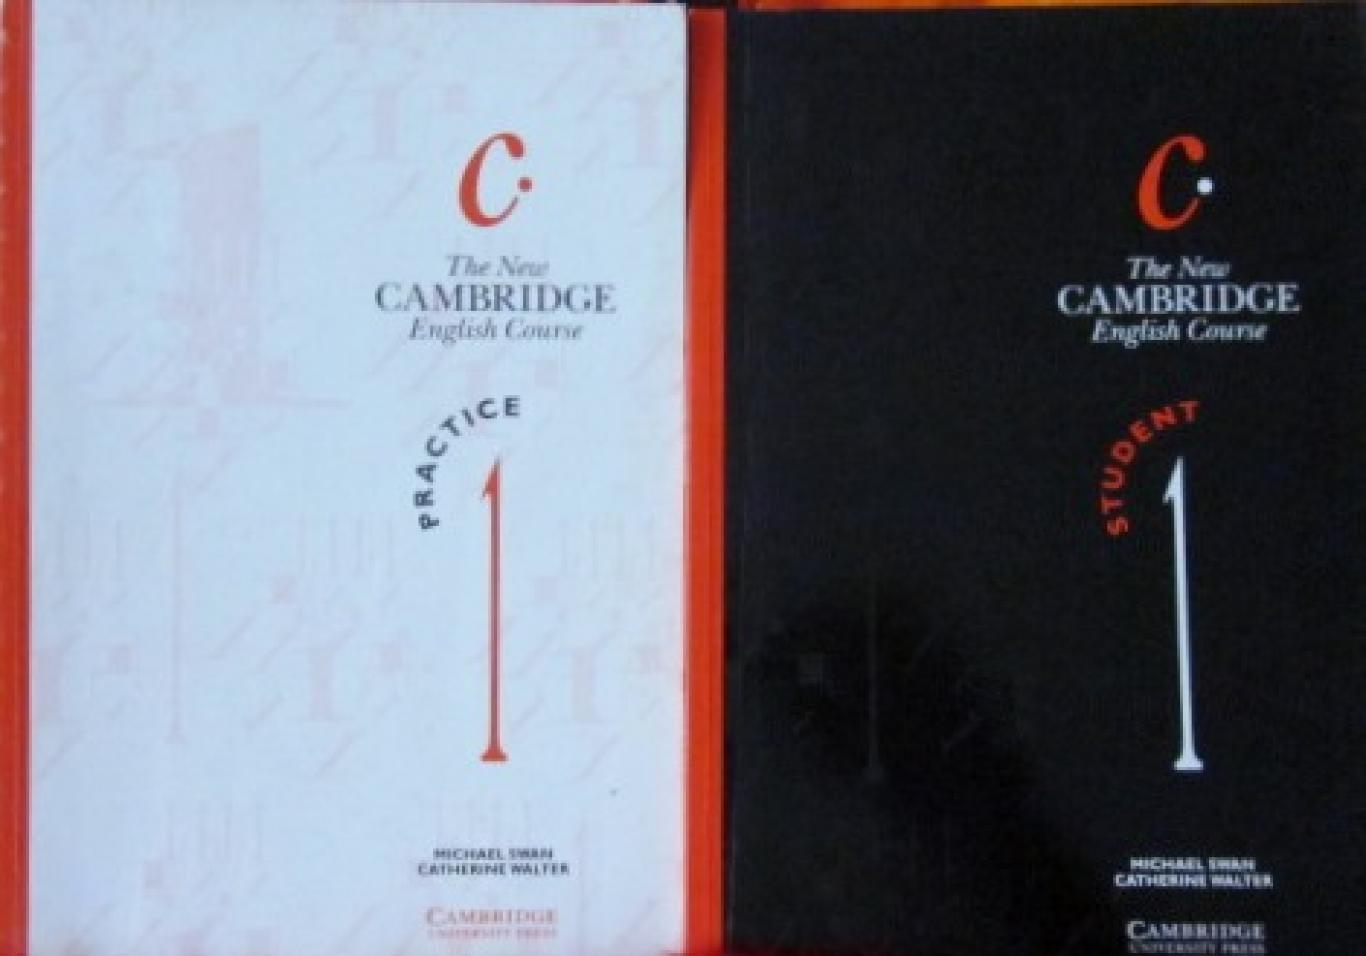 The New Cambridge English Course 1. Student's Book. Practice , Michael Swan, Catherine Walter